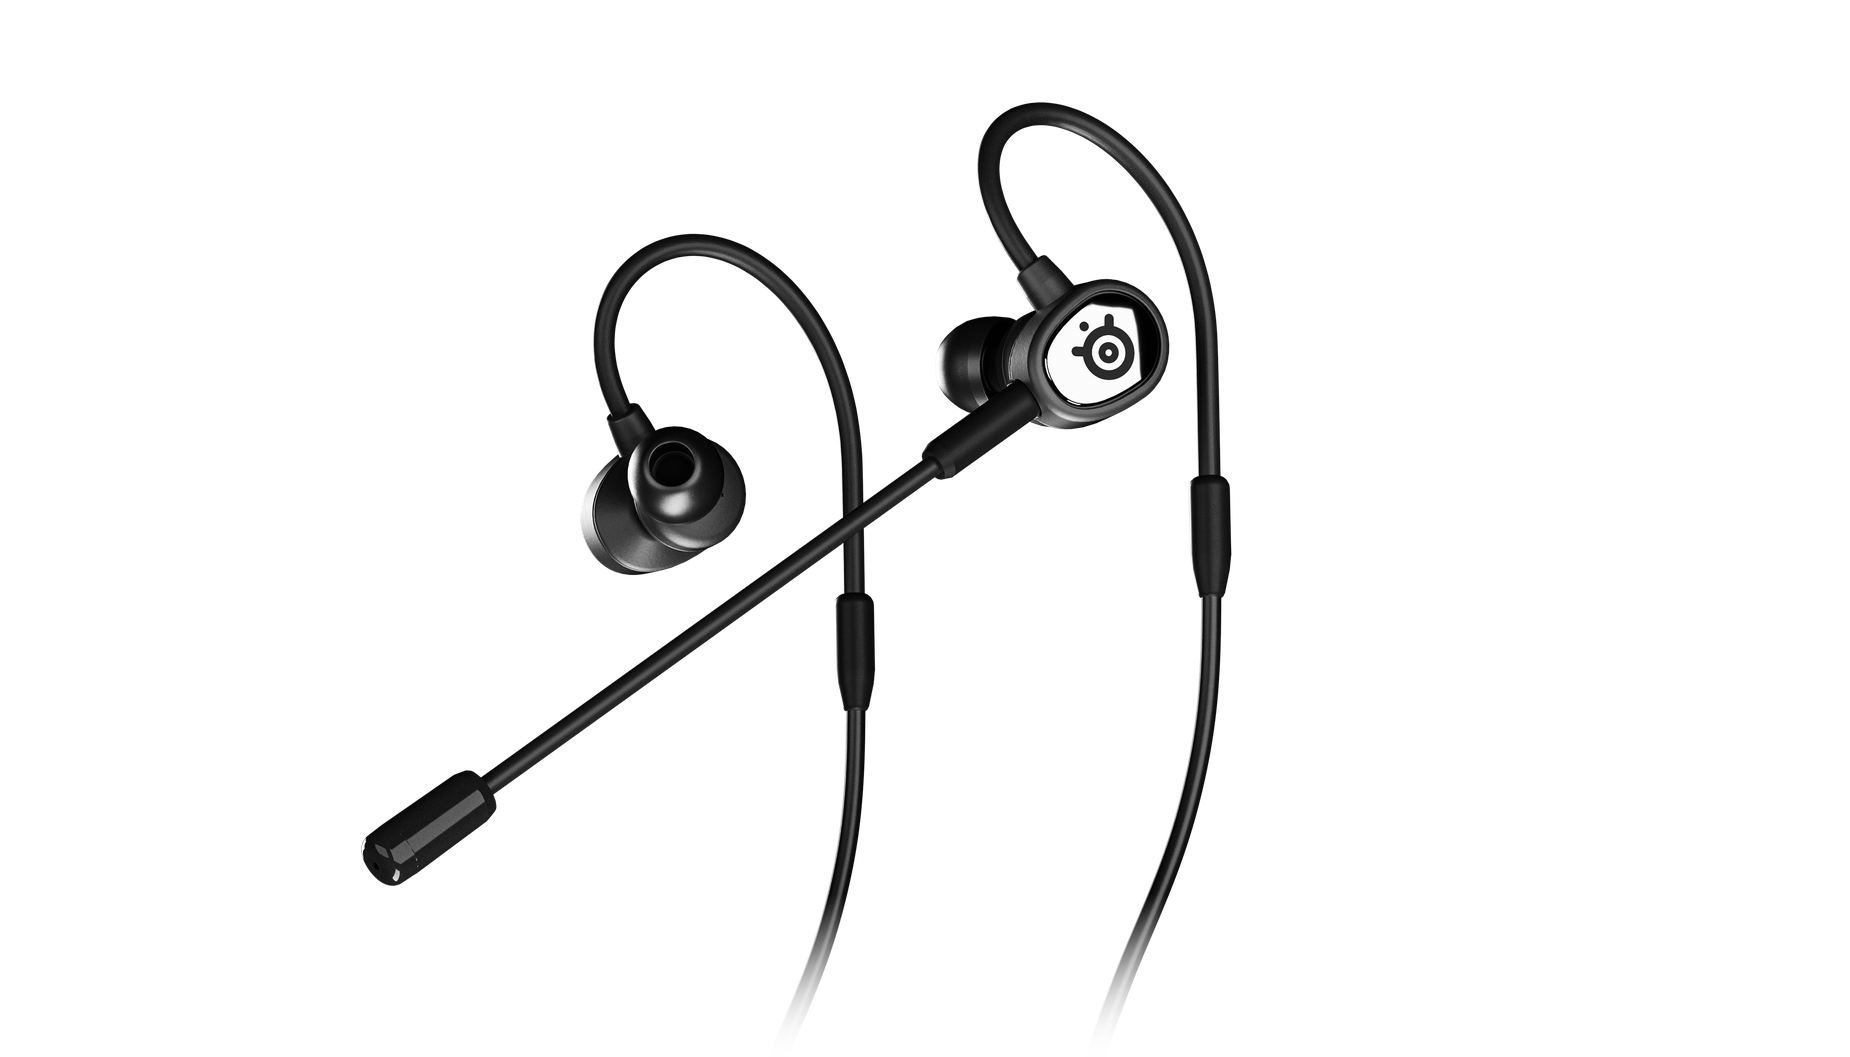 Angled Tusq headset with microphone attached